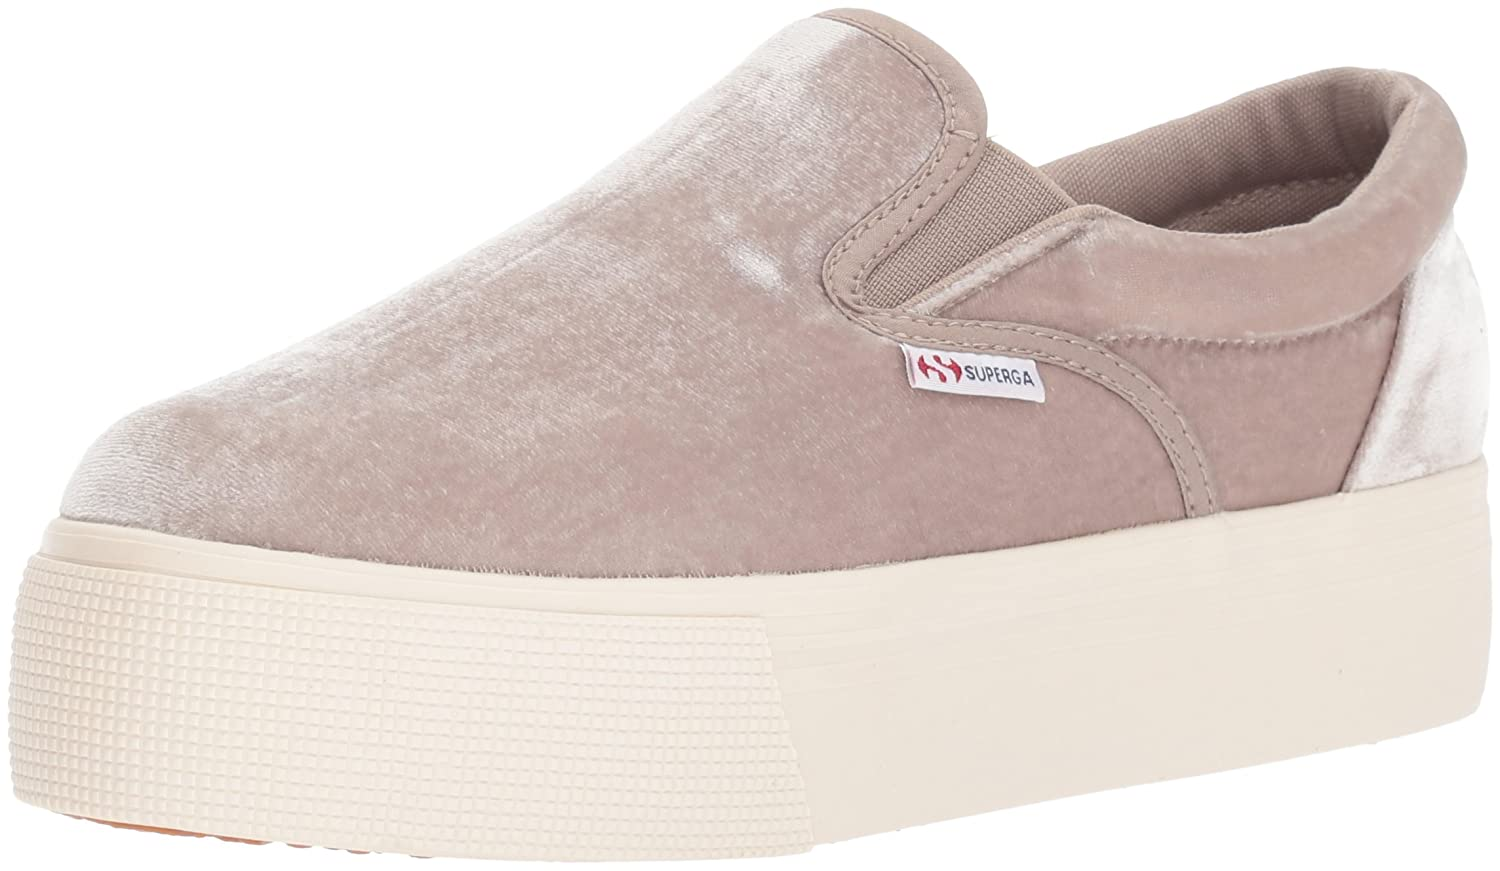 Superga Women's 2314 Velvetjpw Fashion Sneaker B072M5FY42 41.5 M EU / 10 B(M) US|Grey Velvet